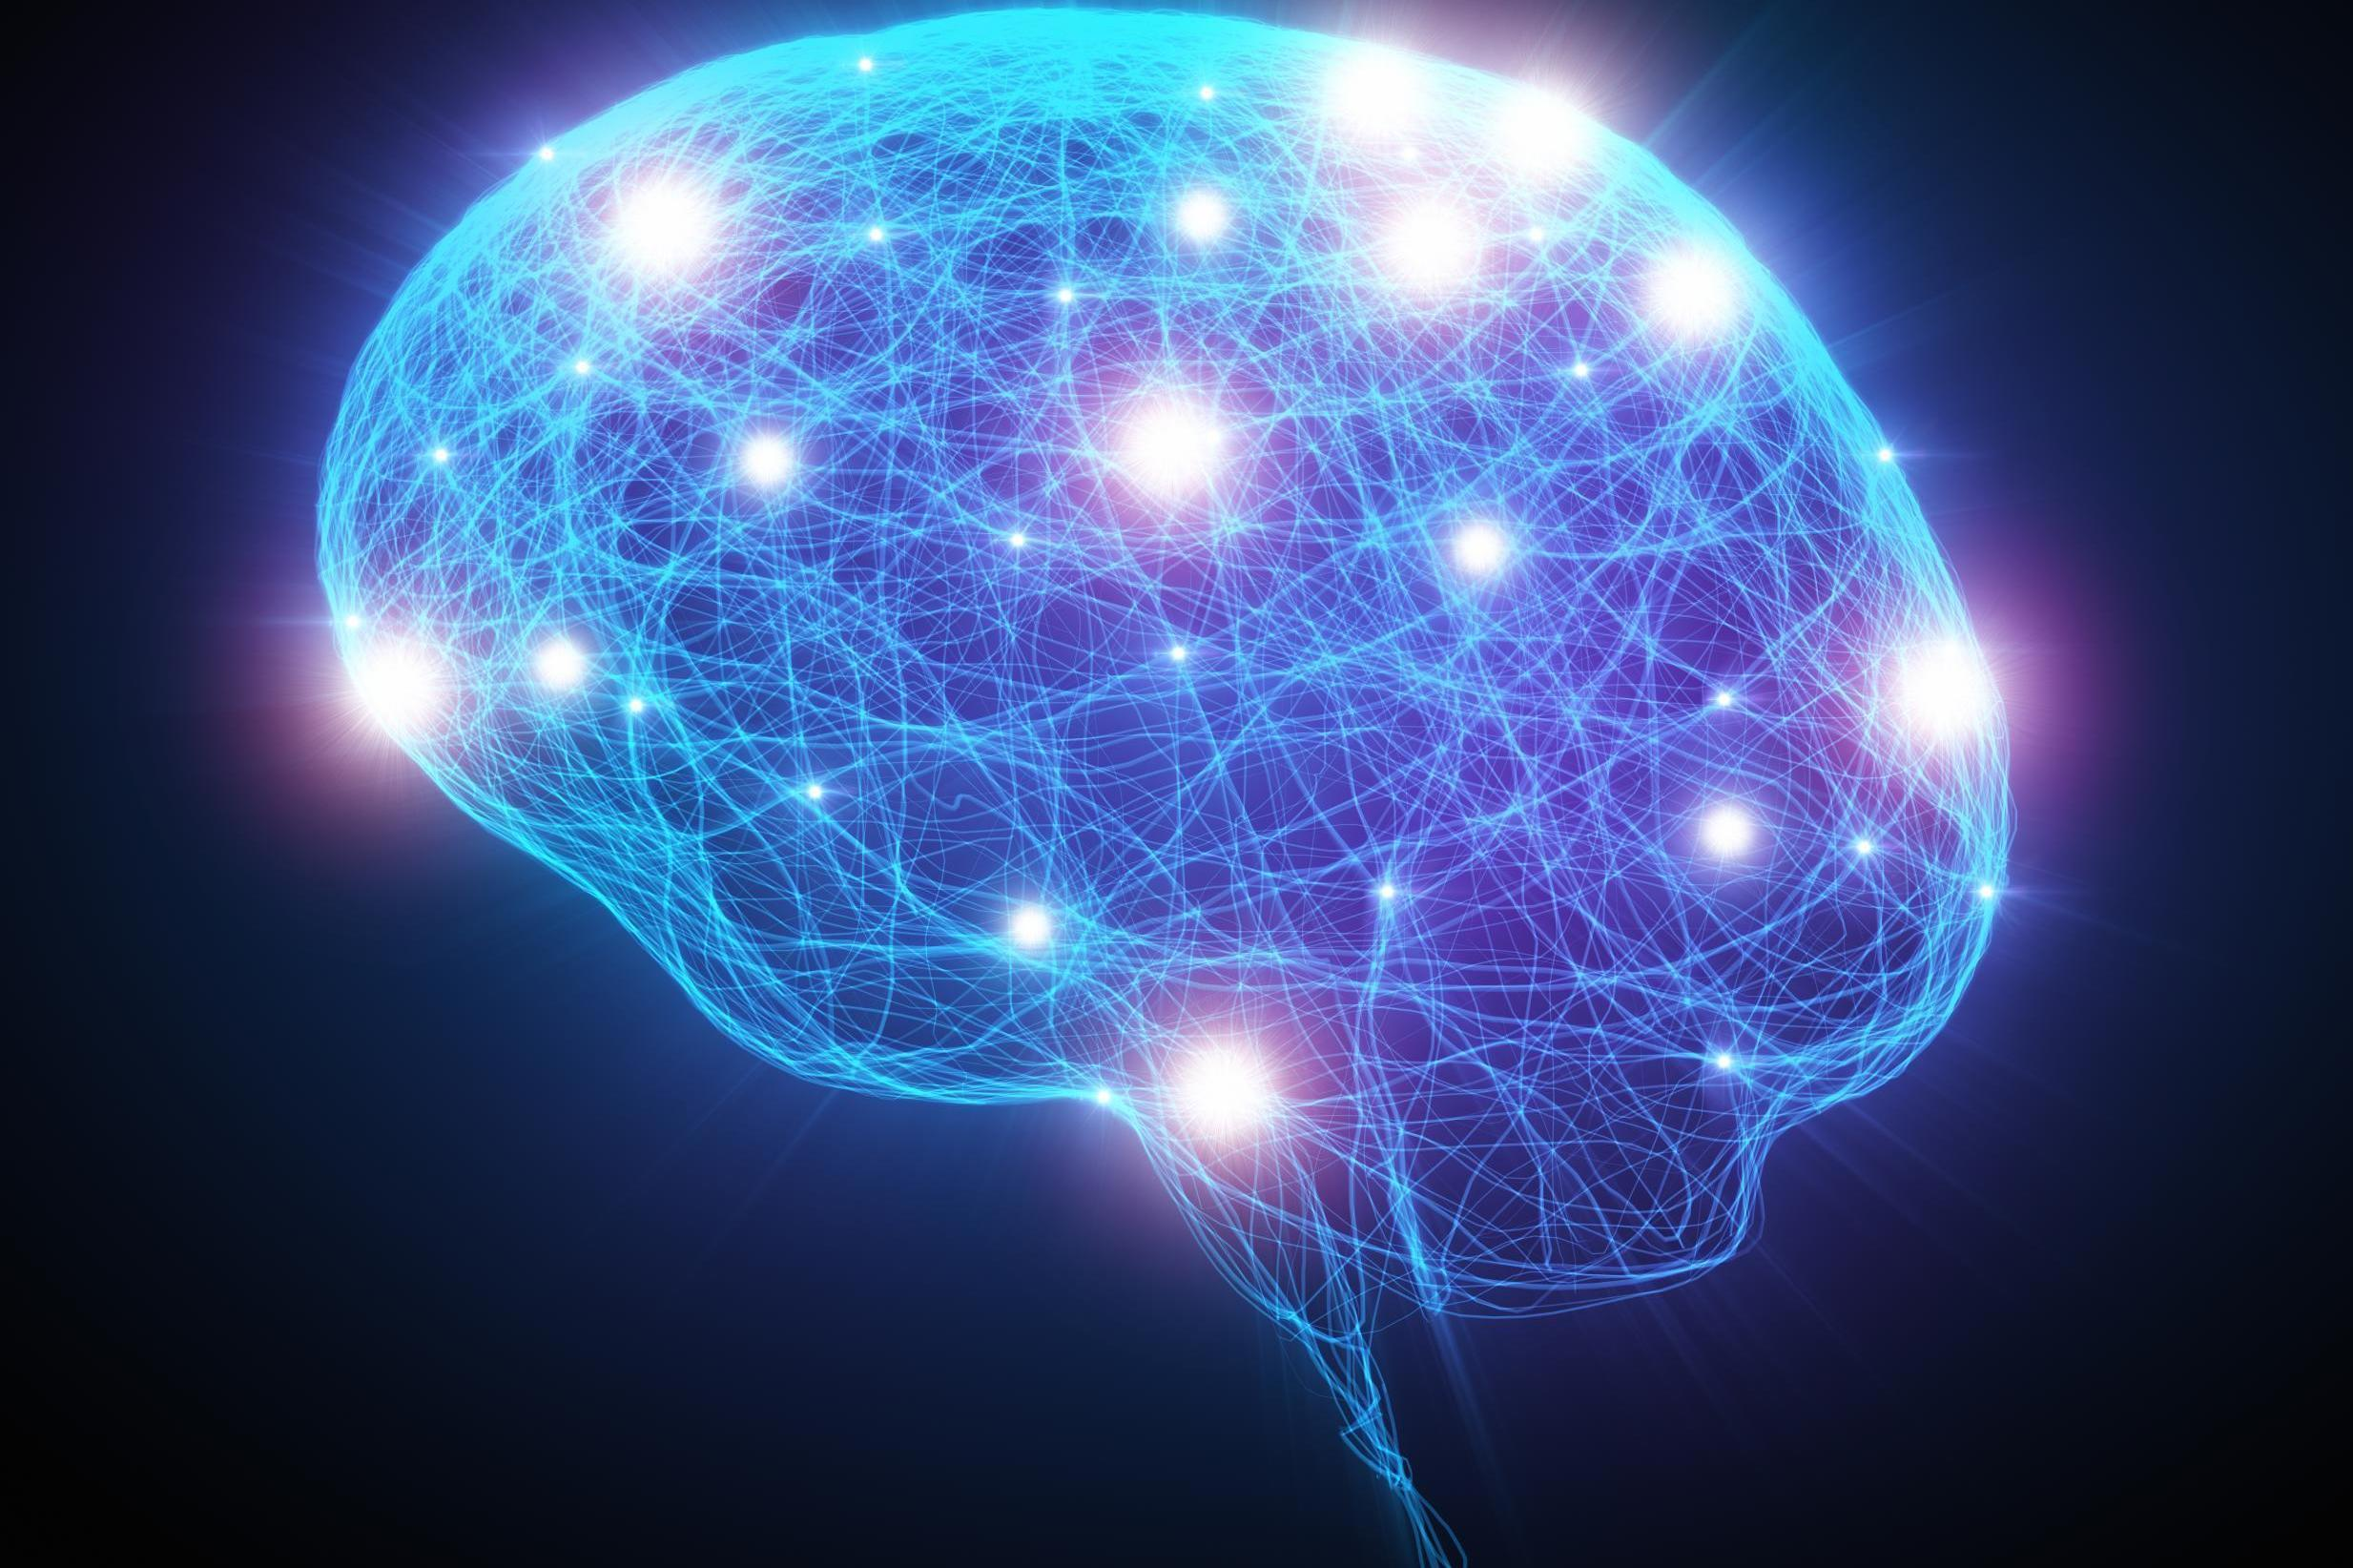 Human brain still active minutes after heart stops beating